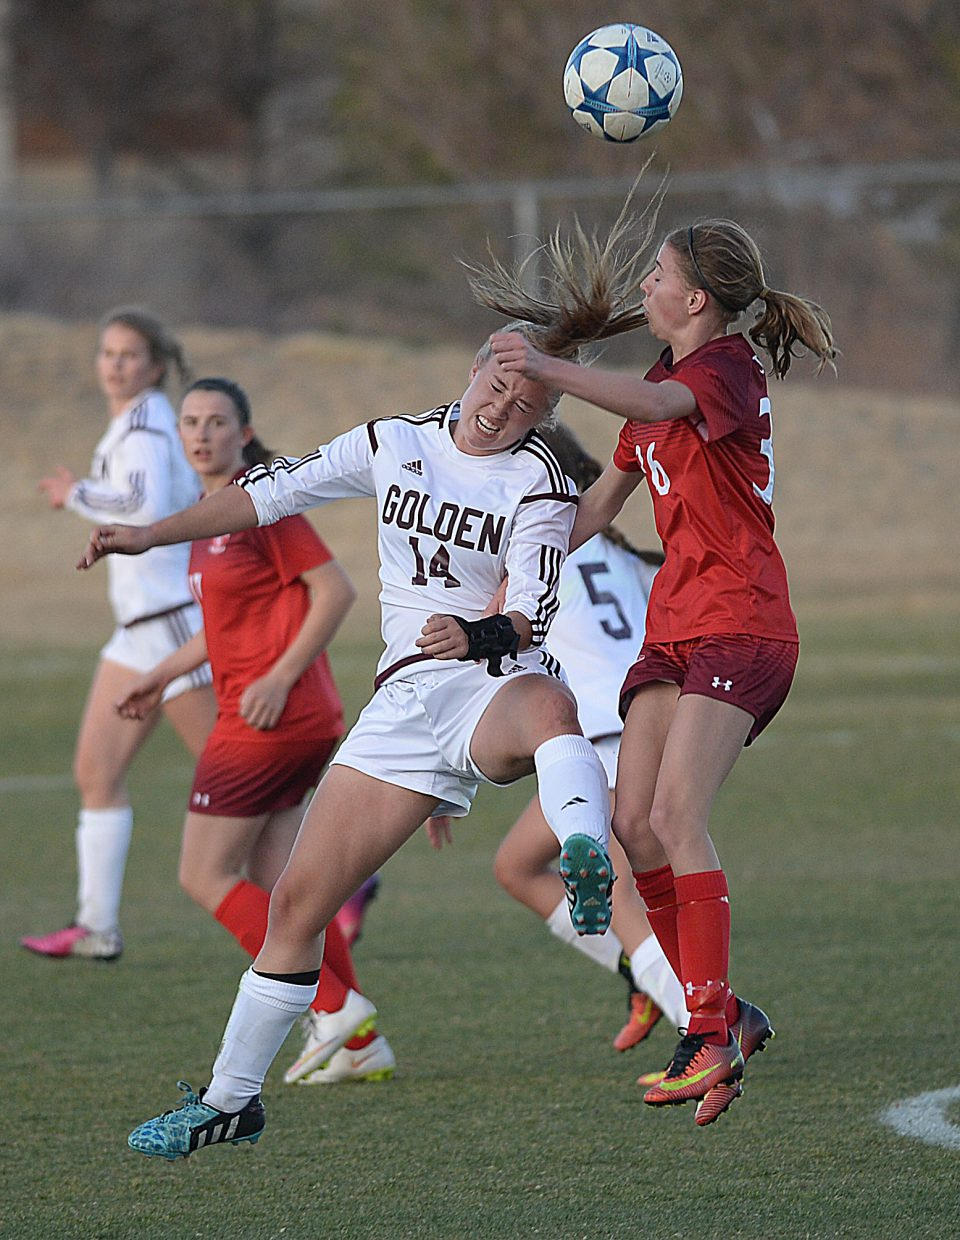 Steamboat Springs Sophie Leeson battles for a ball during Friday night's game against Golden. Golden jumped out to a 5-1 lead at the half.